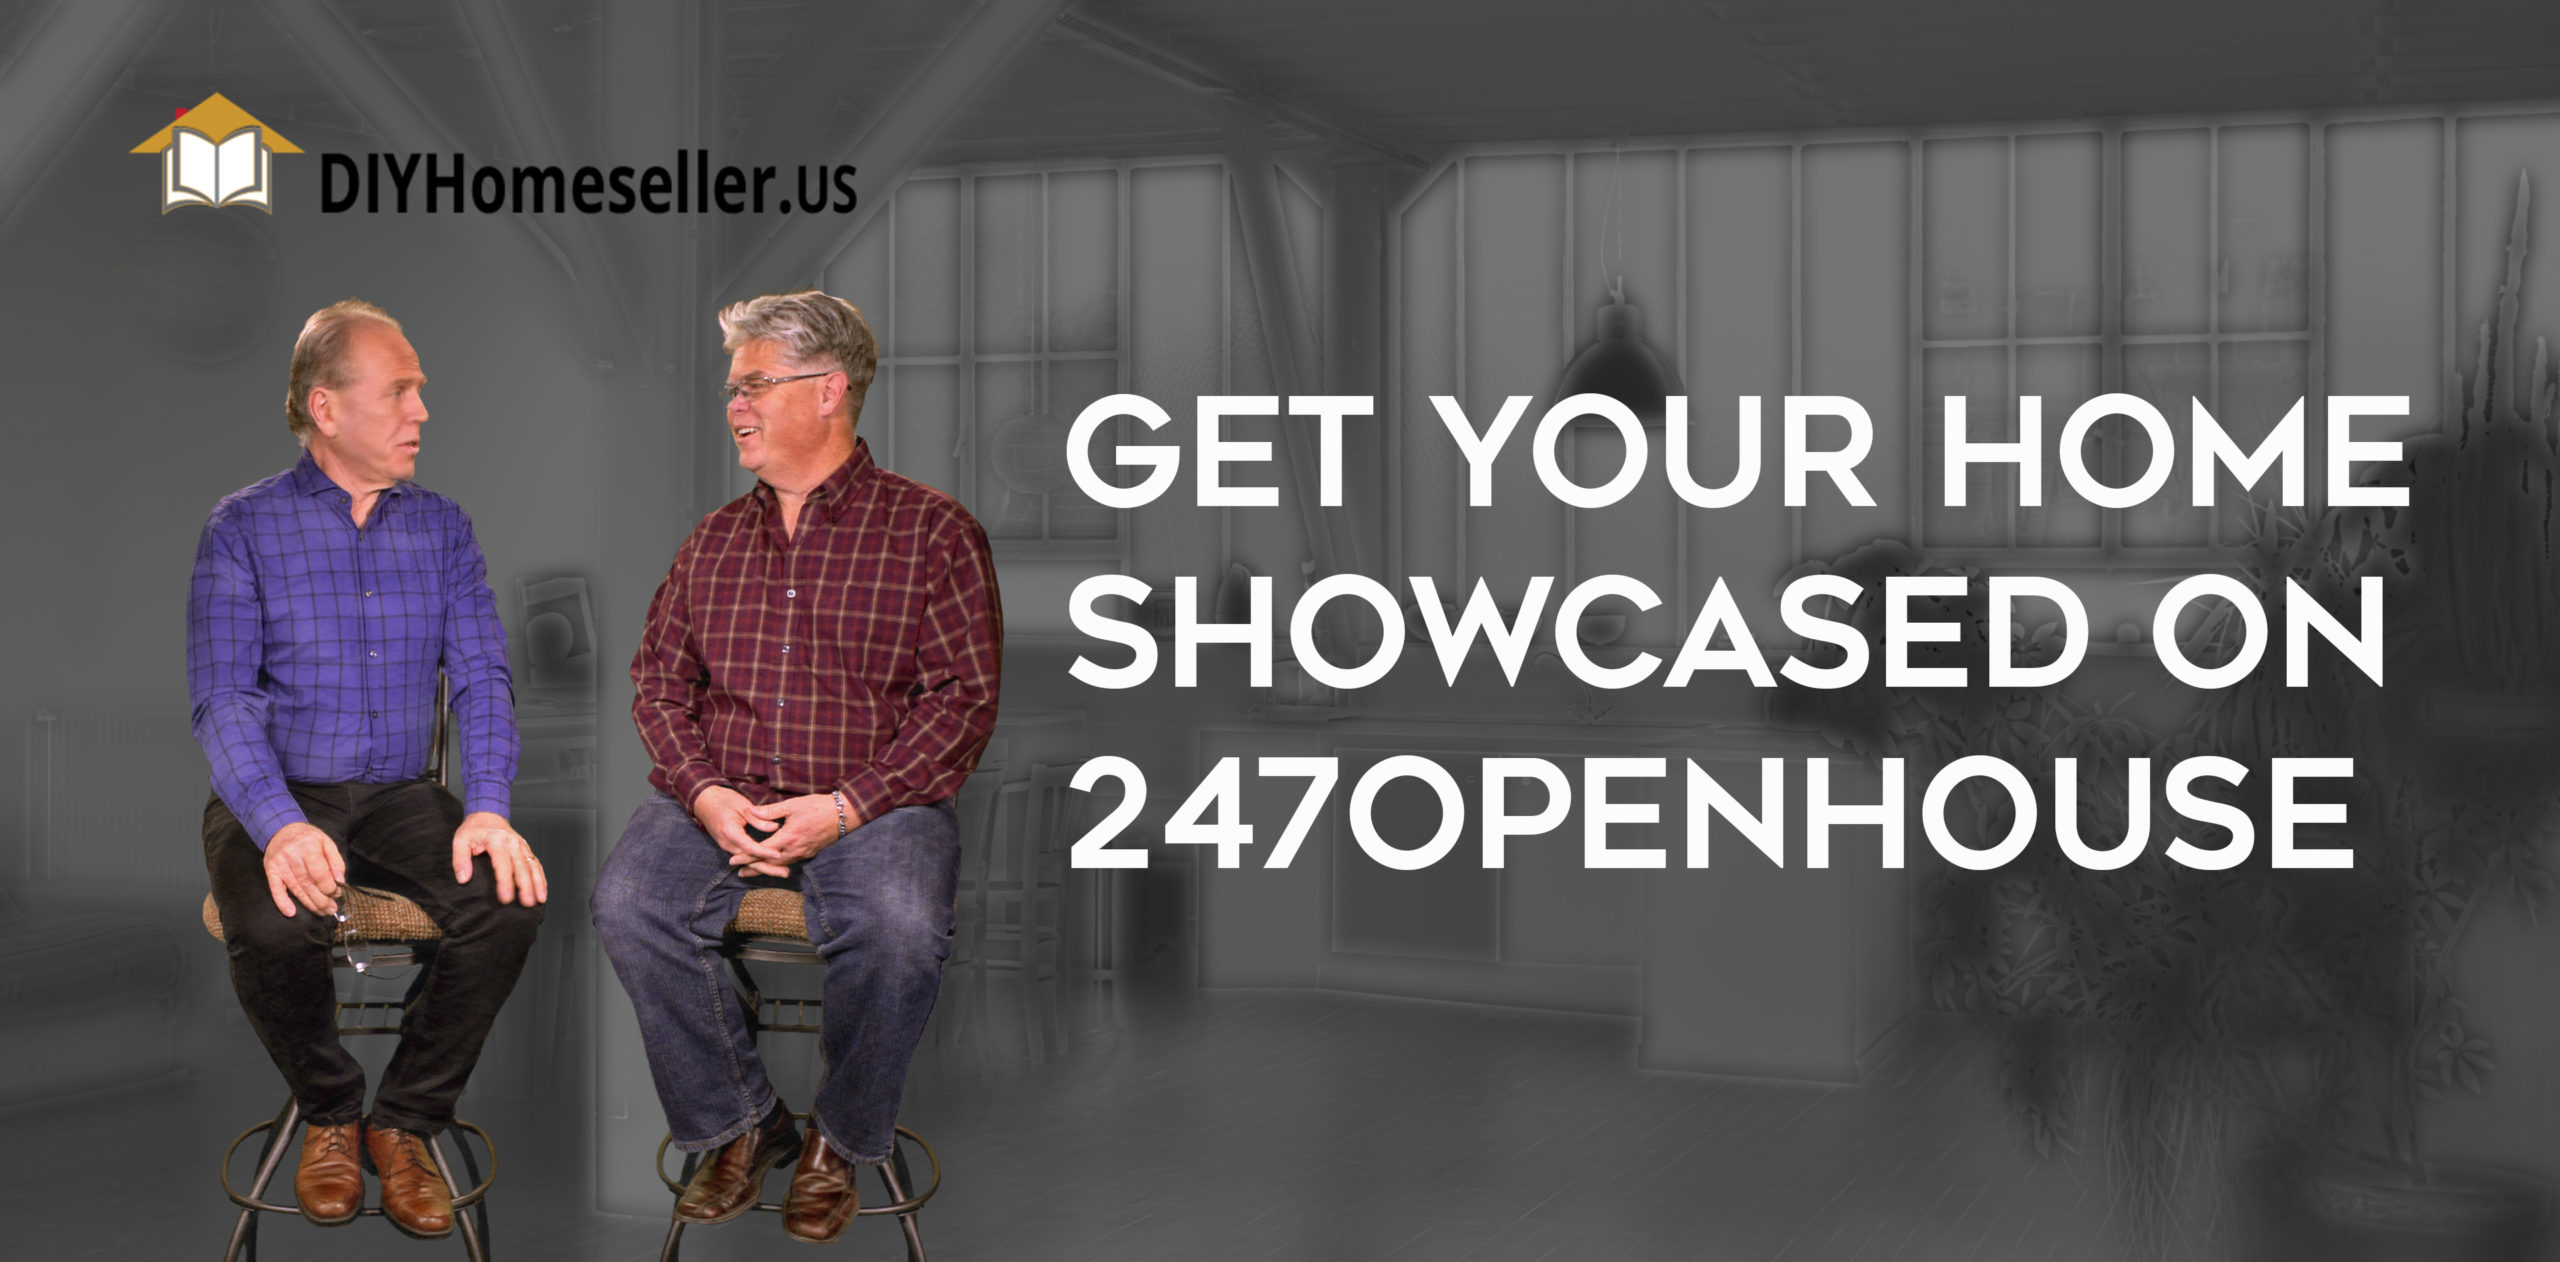 Get Your Property is Showcased on 247OpenHouse.US